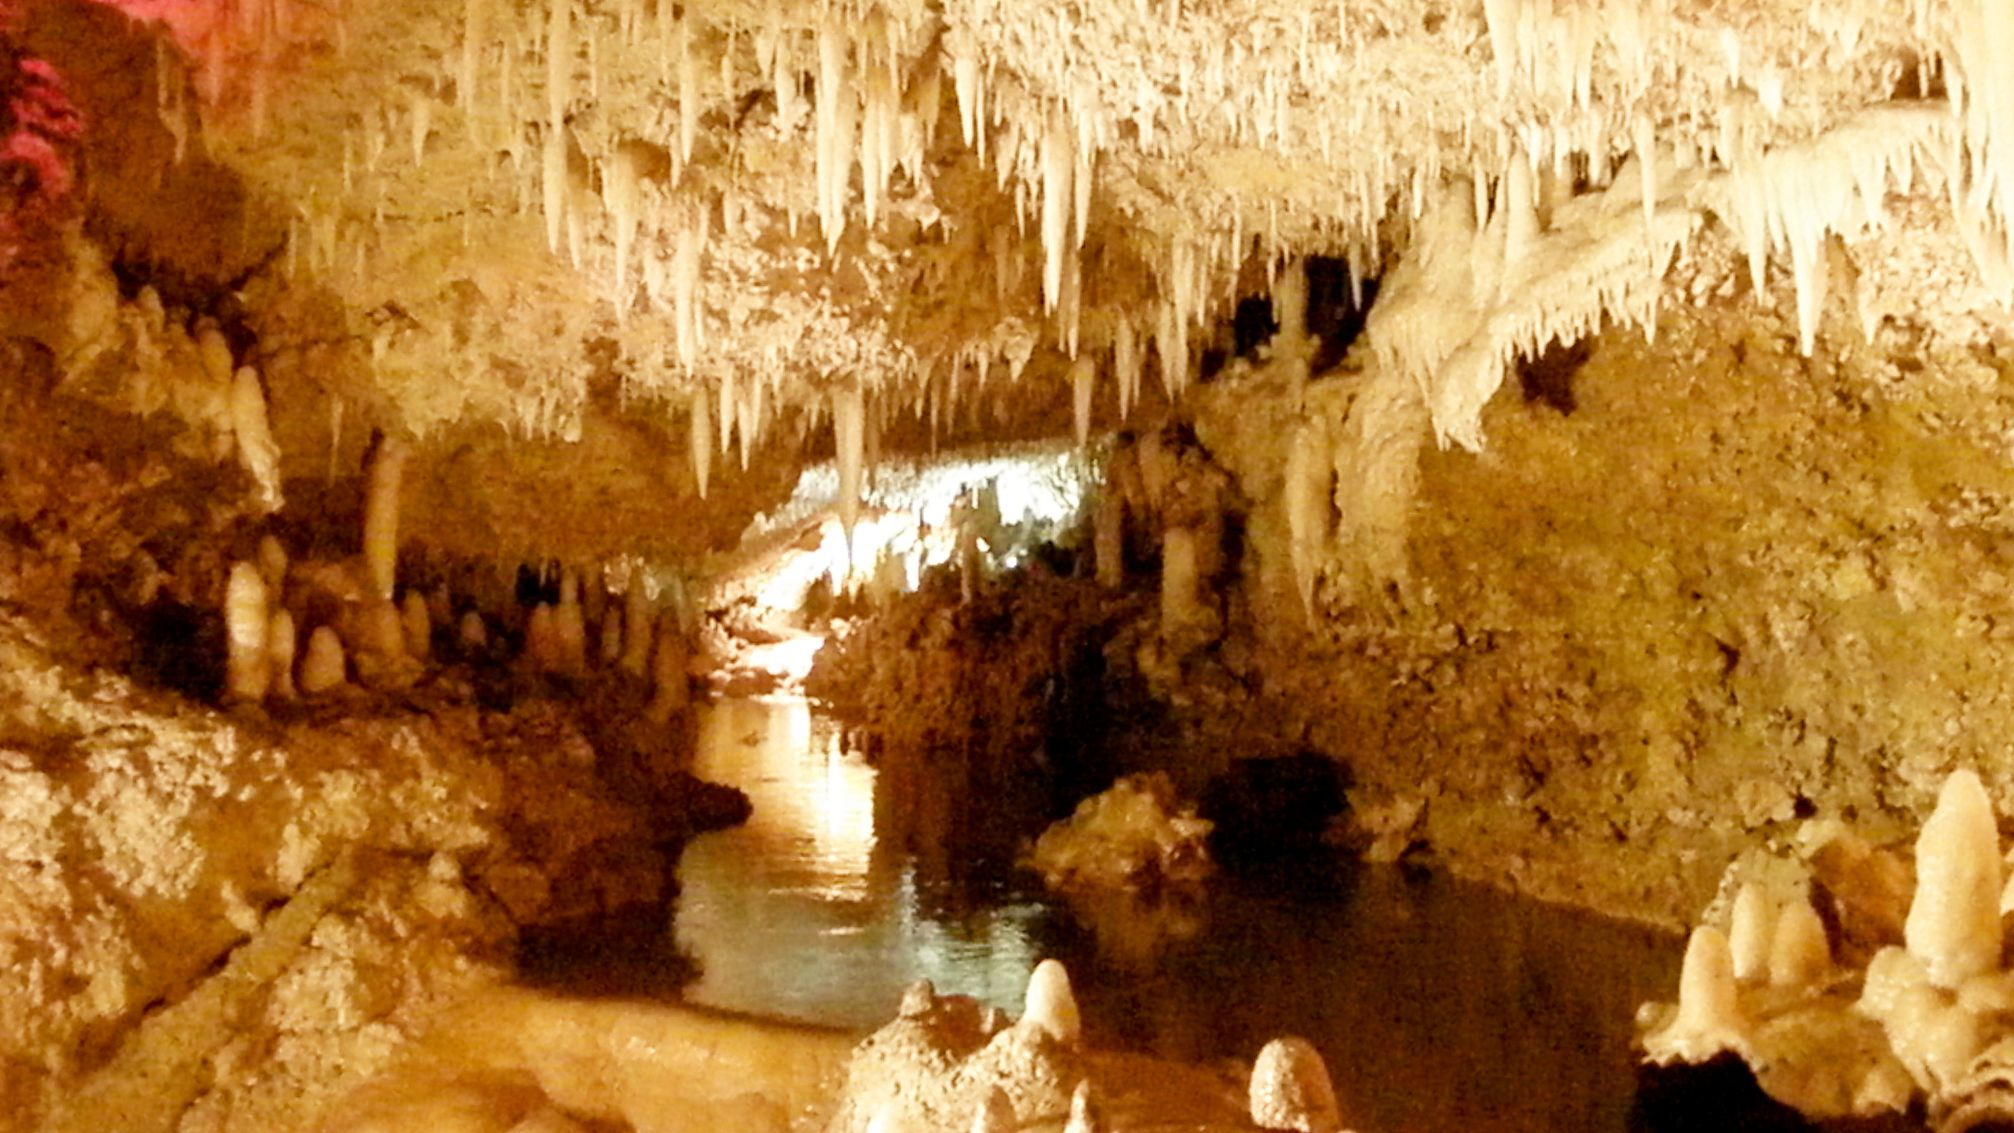 harrisons cave in barbados